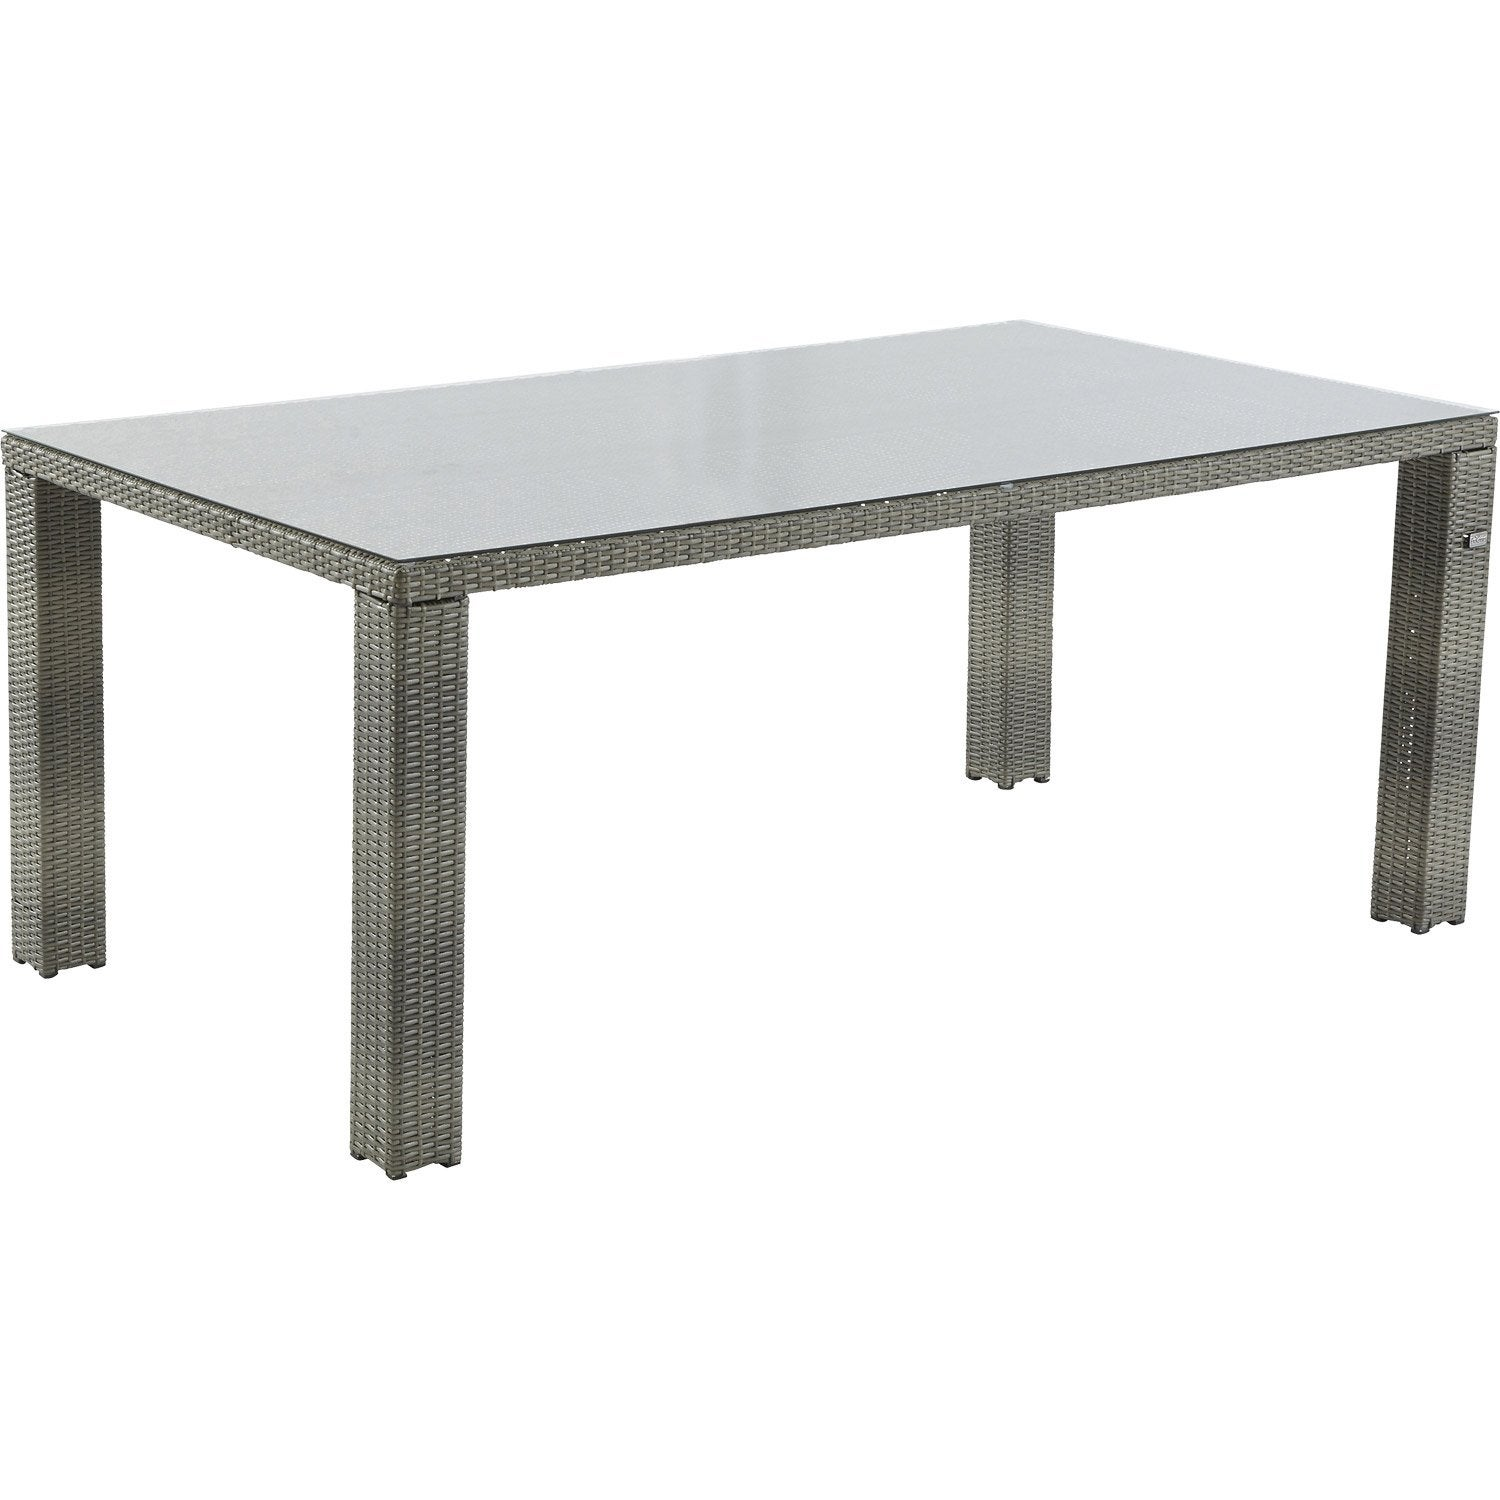 Table de jardin faro rectangulaire gris patin 8 personnes leroy merlin - Leroy merlin table jardin ...